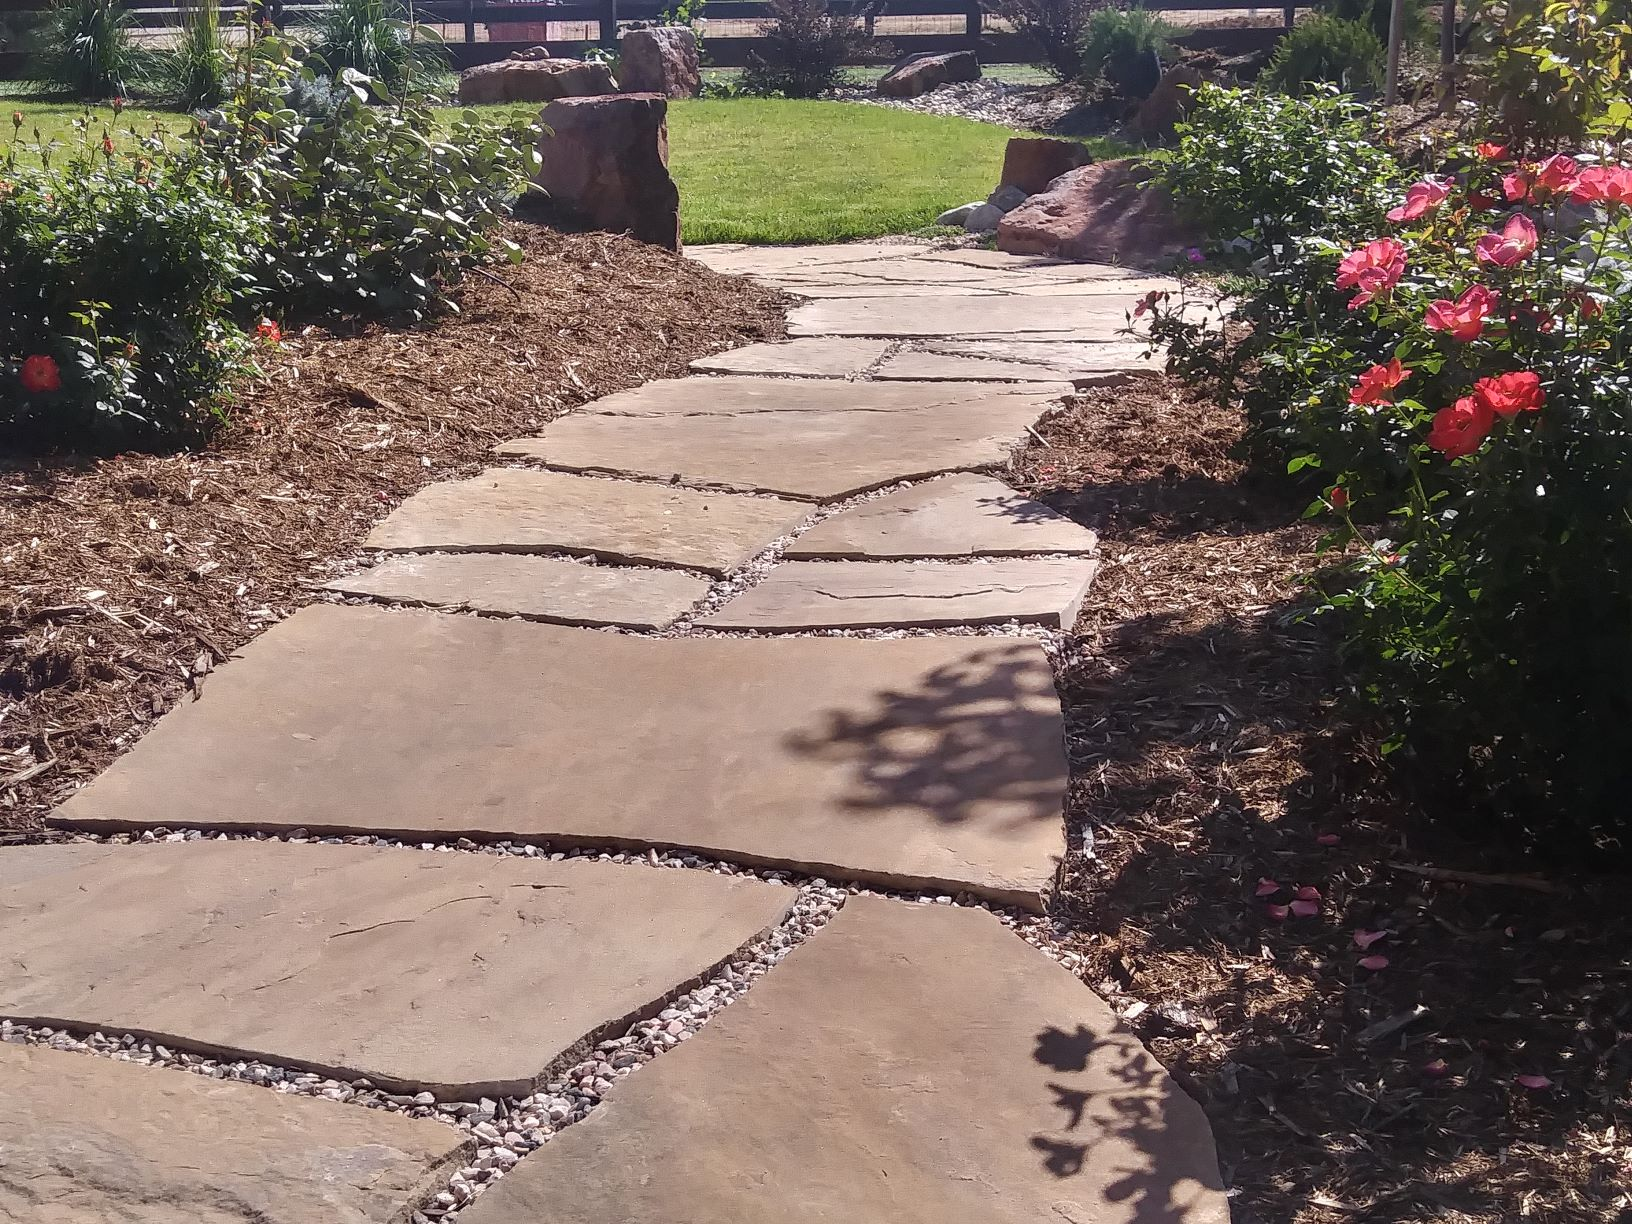 Flat stone path surrounded by mulch with colorful flowers and boulders.